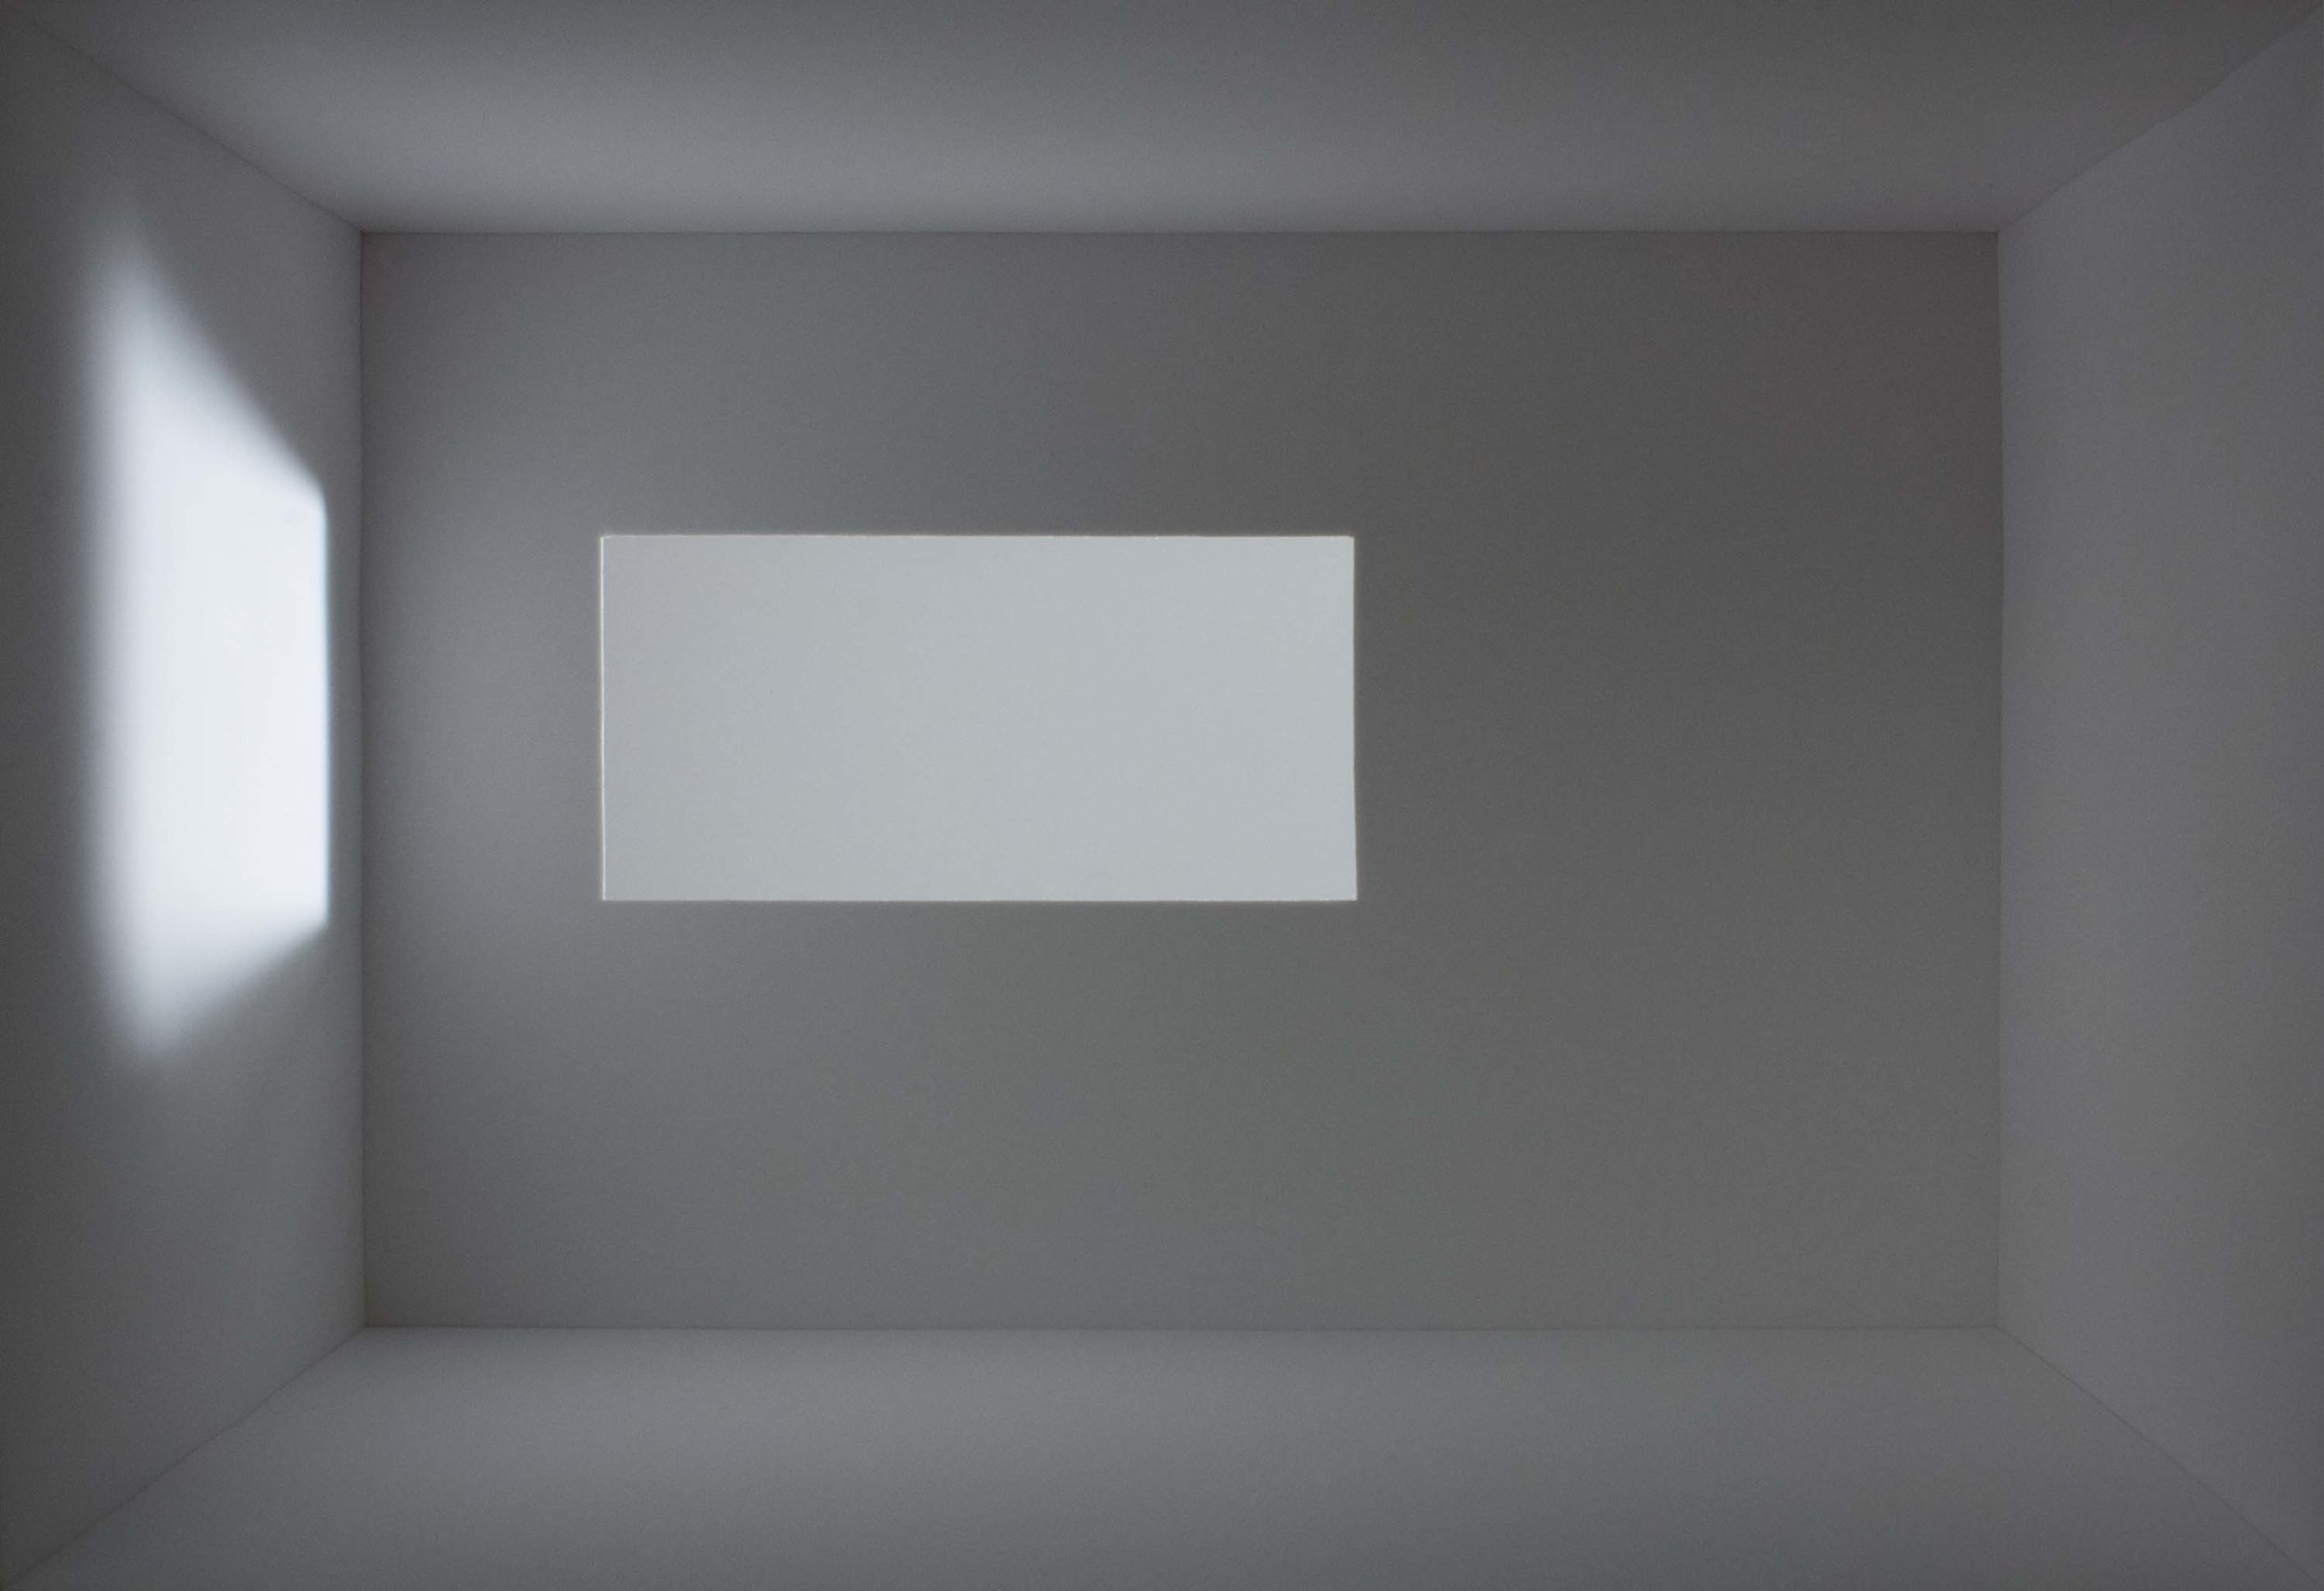 Amy Ho, Two Rooms V, 2014 to 2018 single channel projection Courtesy Chandra Cerrito Contemporary